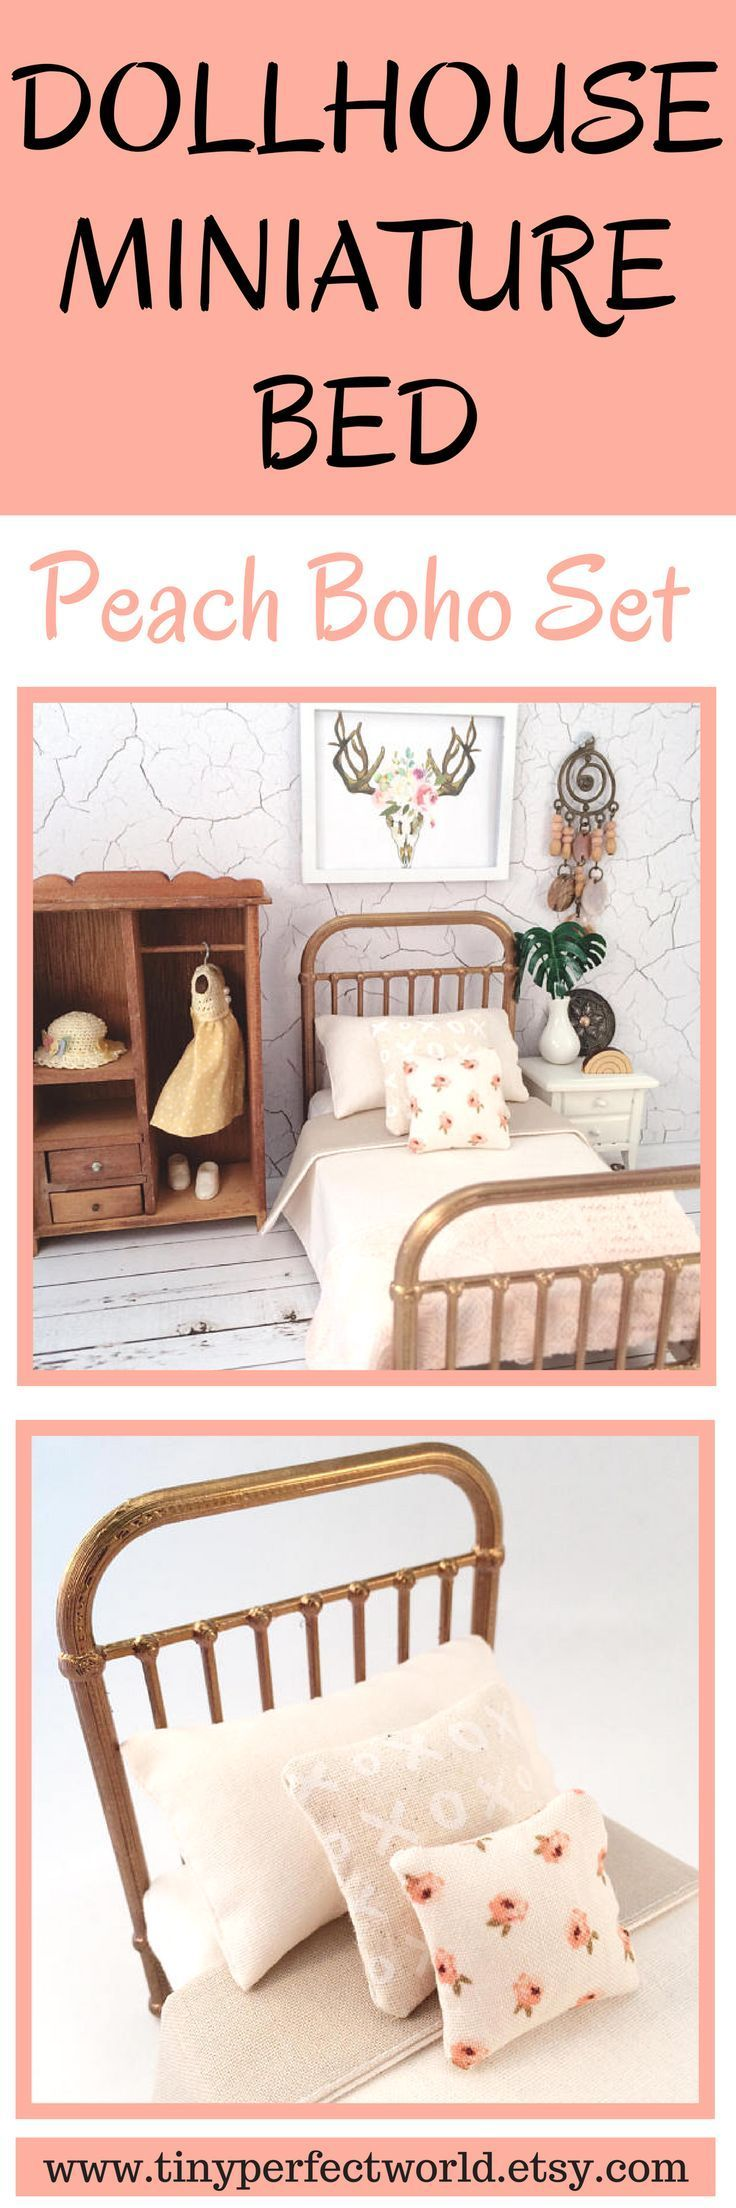 26 best Dolls Dollhouses and Miniatures images on Pinterest ...